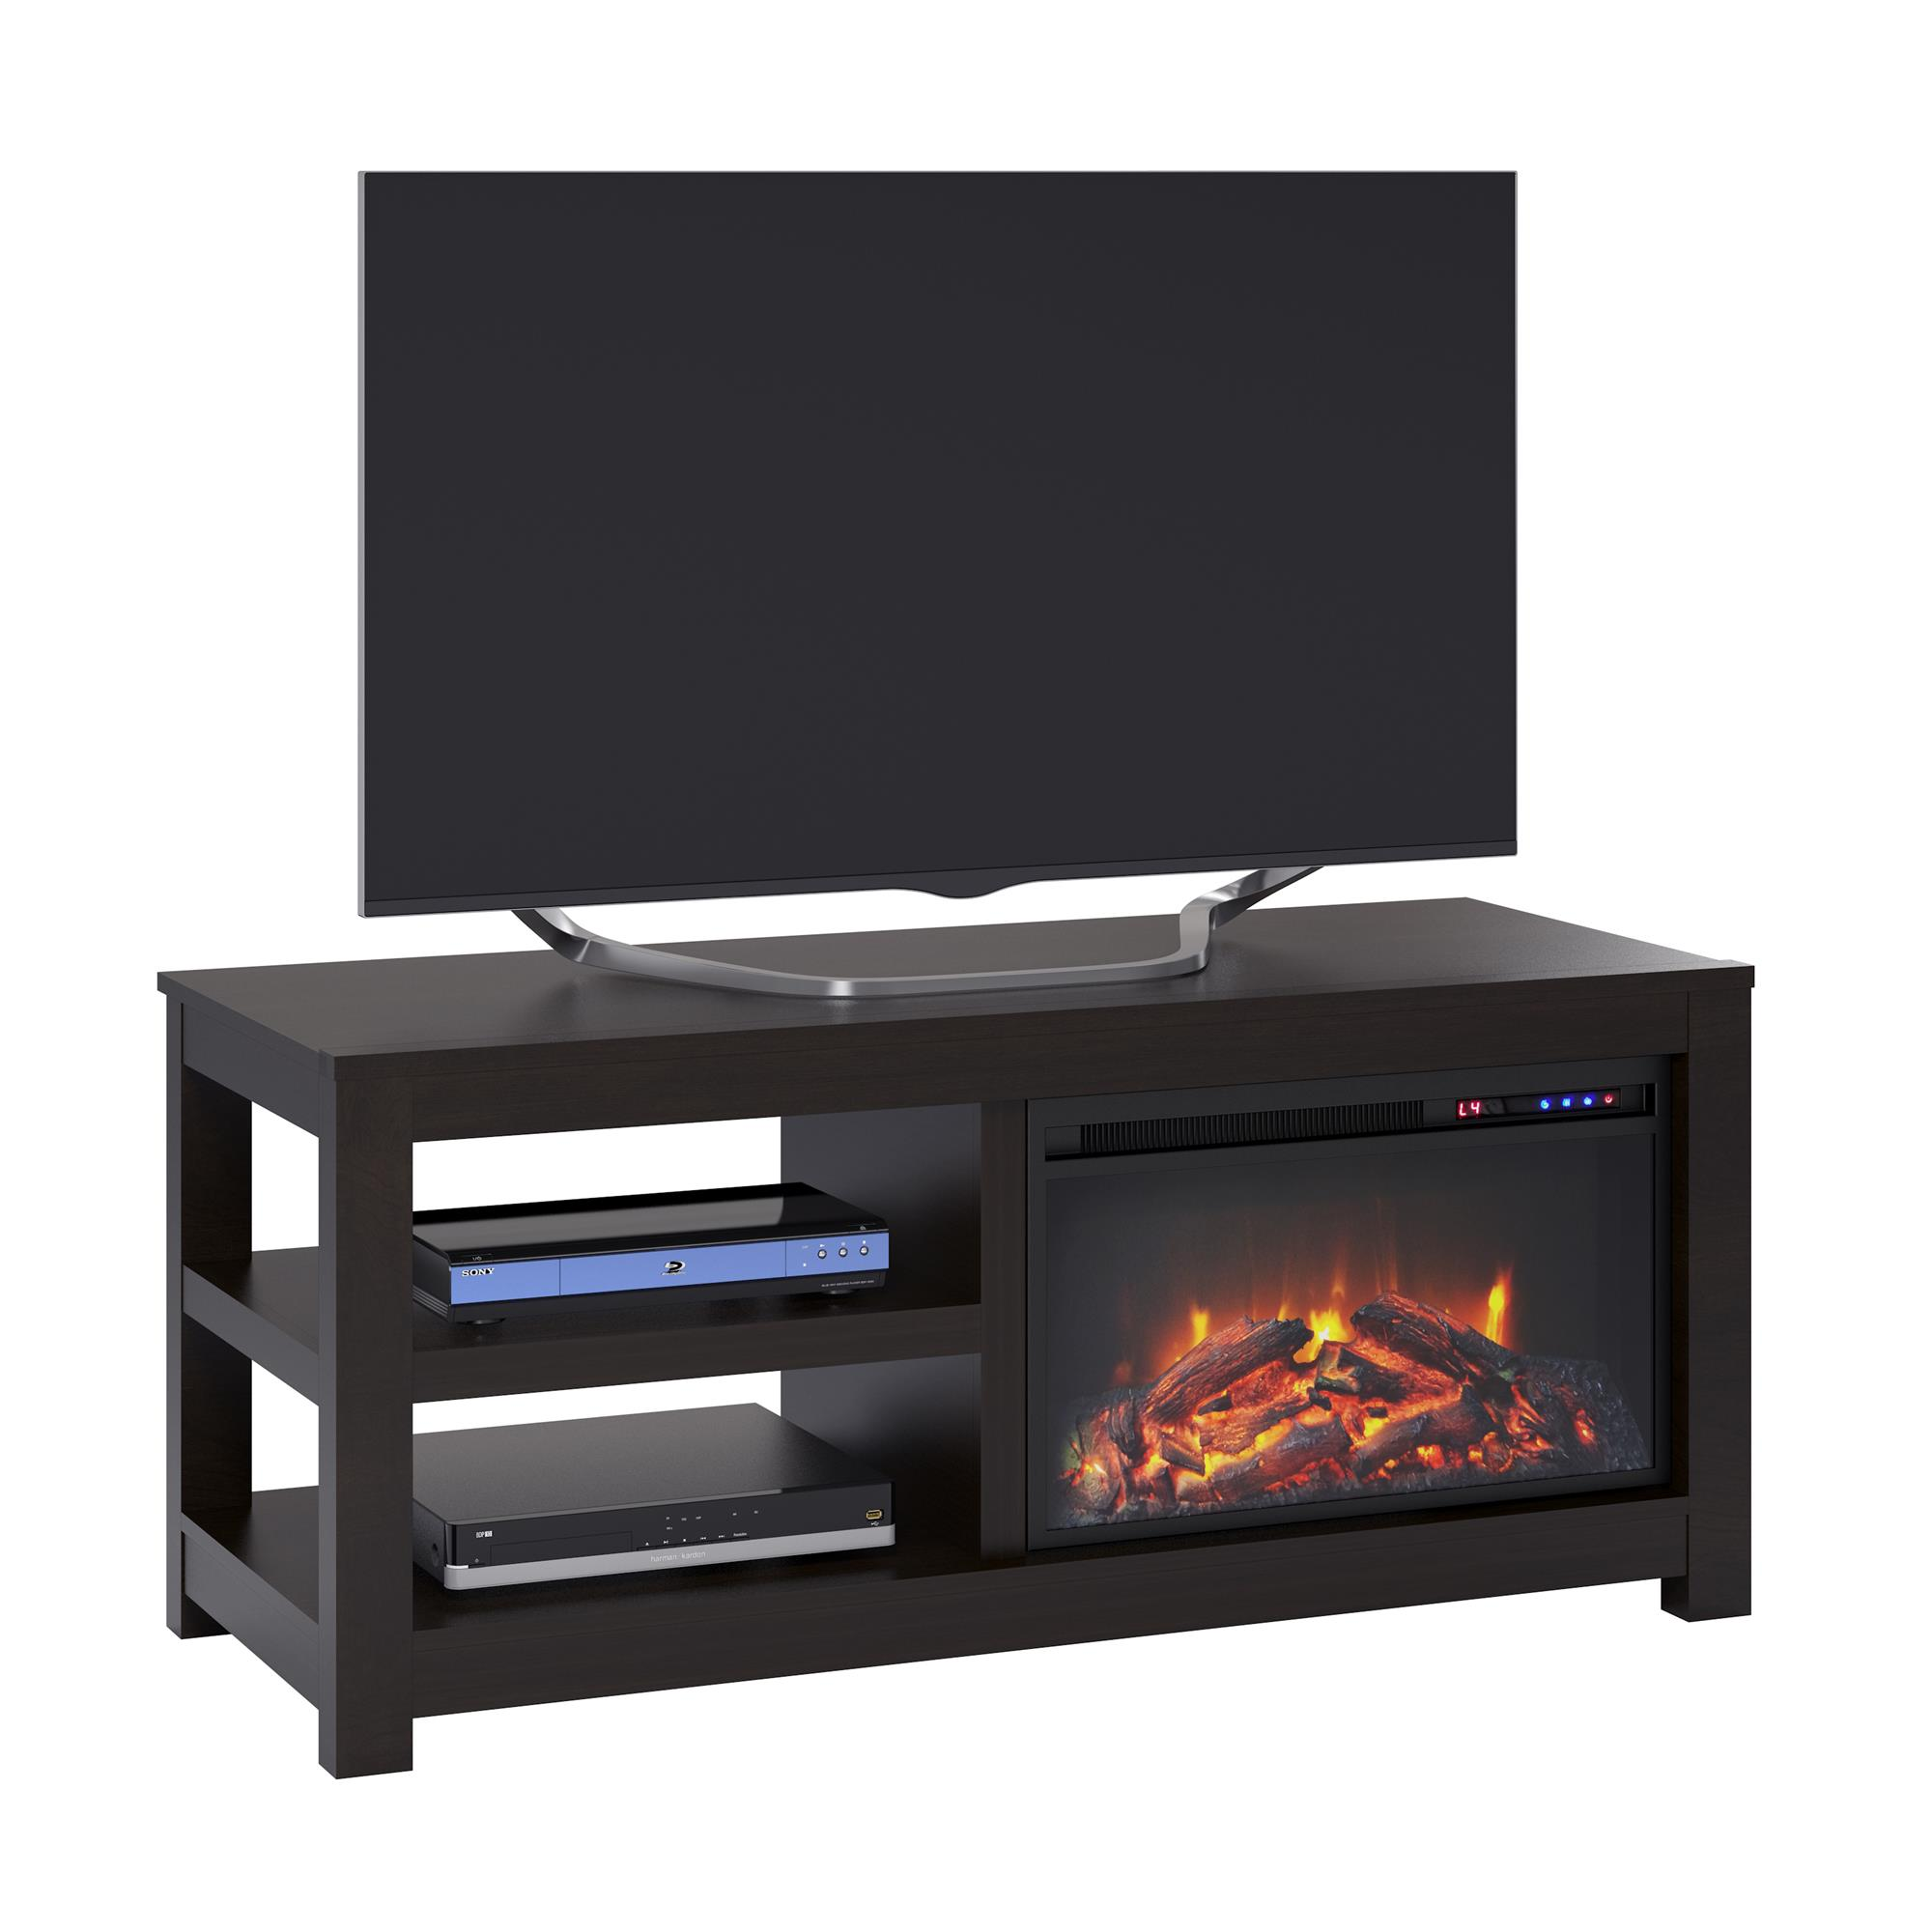 "Ameriwood Home Glyndon Electric Fireplace TV Stand for TVs up to 55"" Espresso"